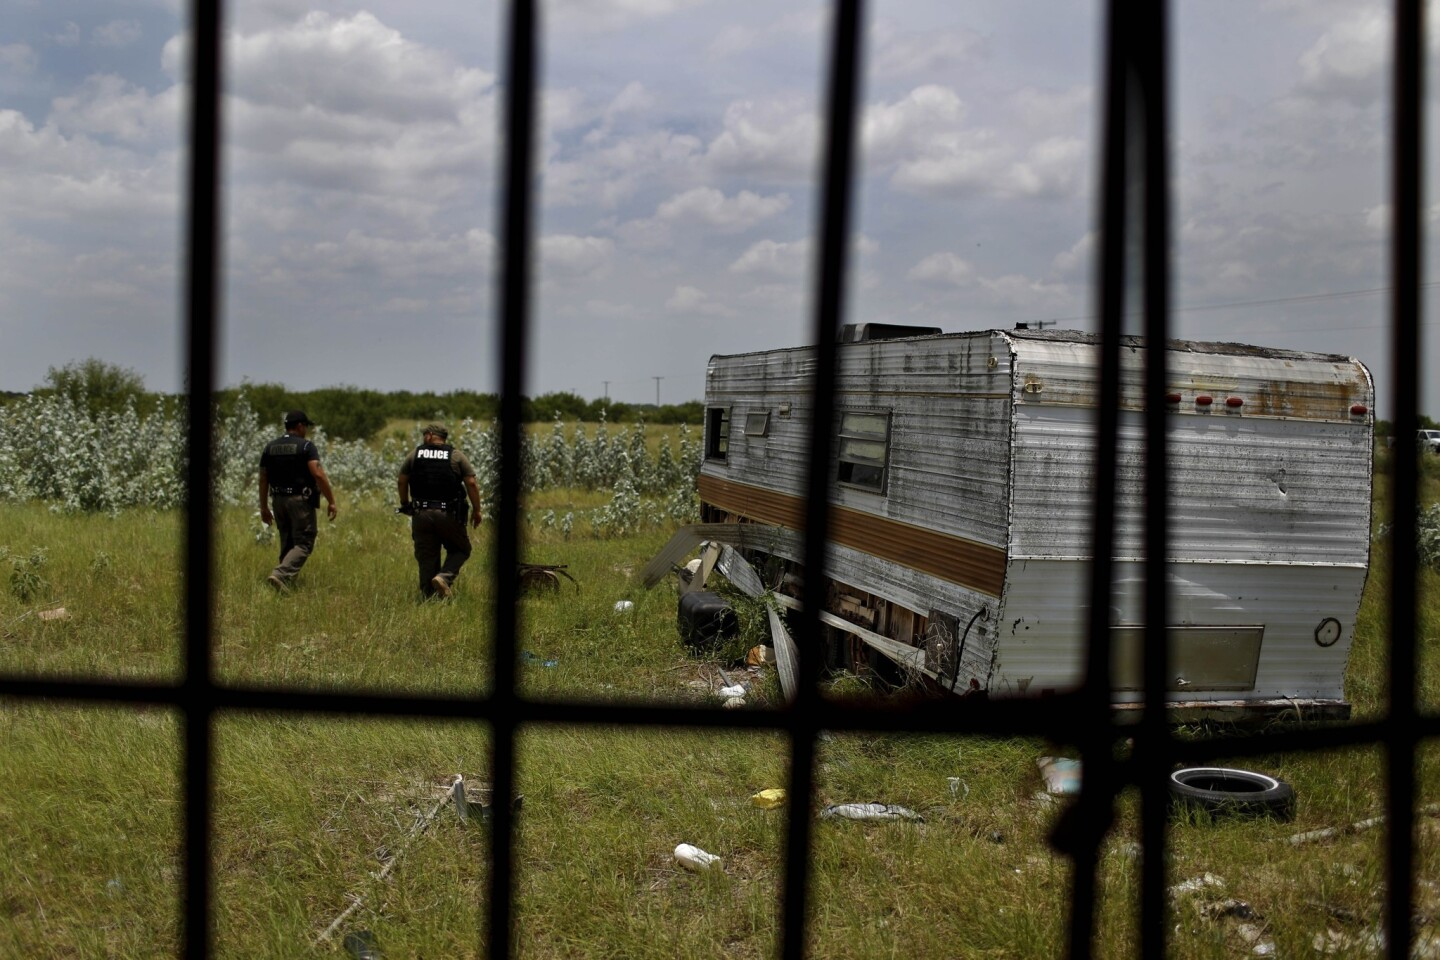 Deputies Domingo Aguirre, left, and Daniel Zamarripa, stand outside an abandoned trailer used by migrants for shelter on their journey north through Texas' Brooks County.